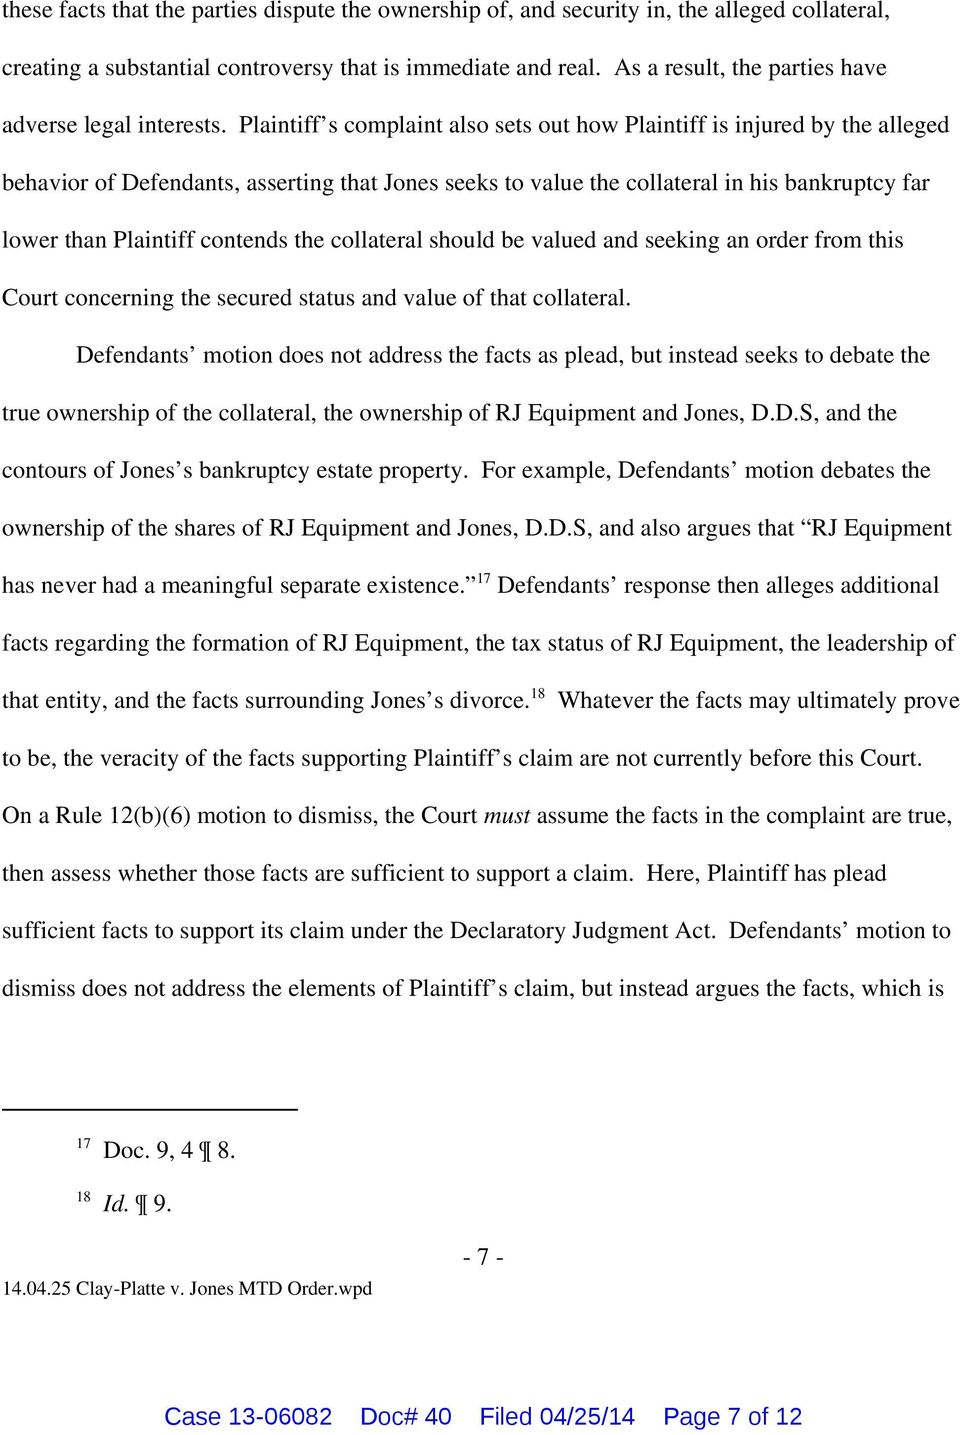 Plaintiff s complaint also sets out how Plaintiff is injured by the alleged behavior of Defendants, asserting that Jones seeks to value the collateral in his bankruptcy far lower than Plaintiff